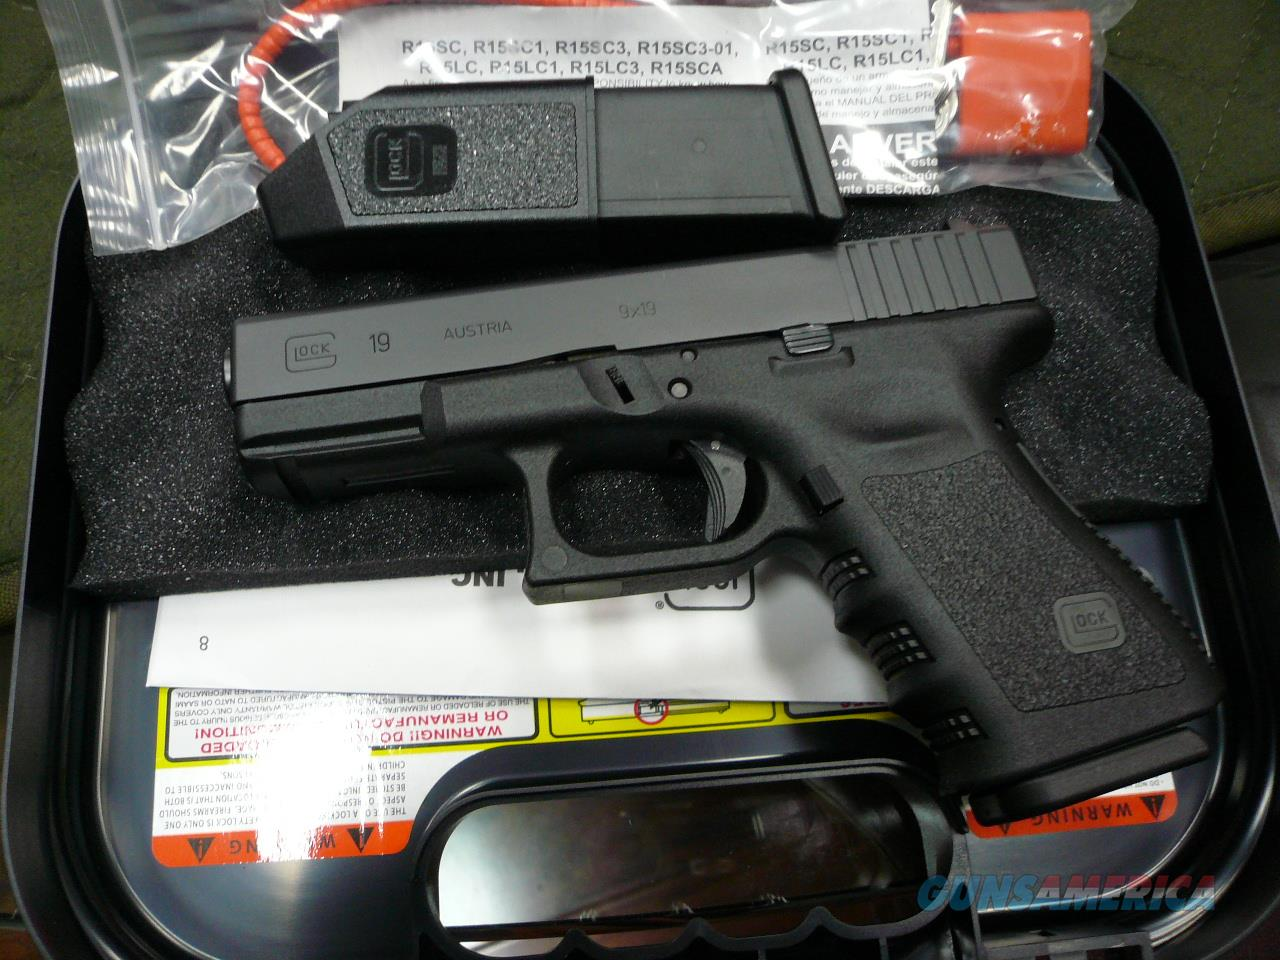 MODEL-19 9mm (2-10rd mags)NIB  Guns > Pistols > Glock Pistols > 19